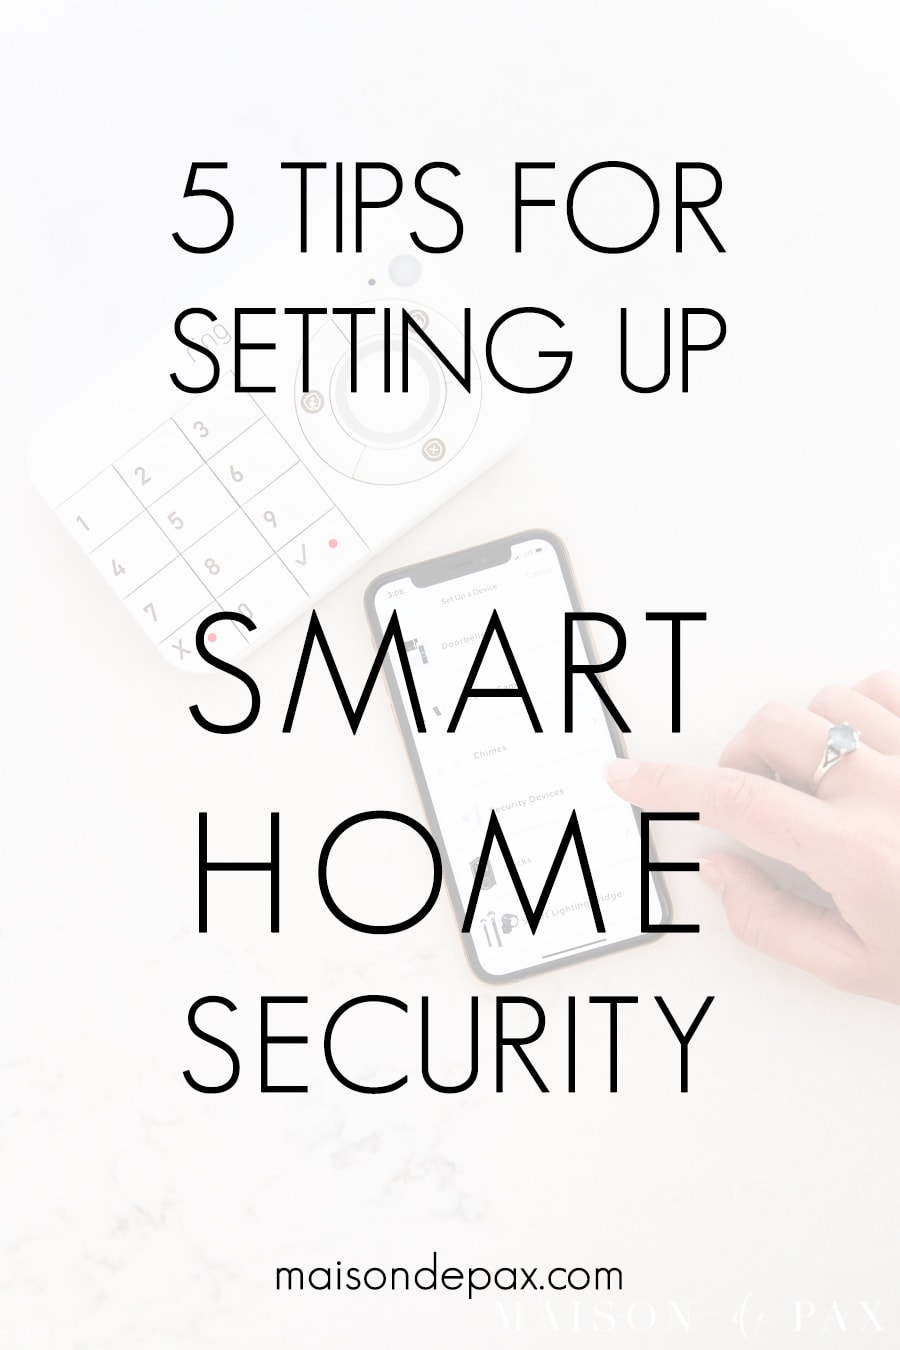 security keypad with overlay: 5 tips for setting up smart home security | Maison de Pax